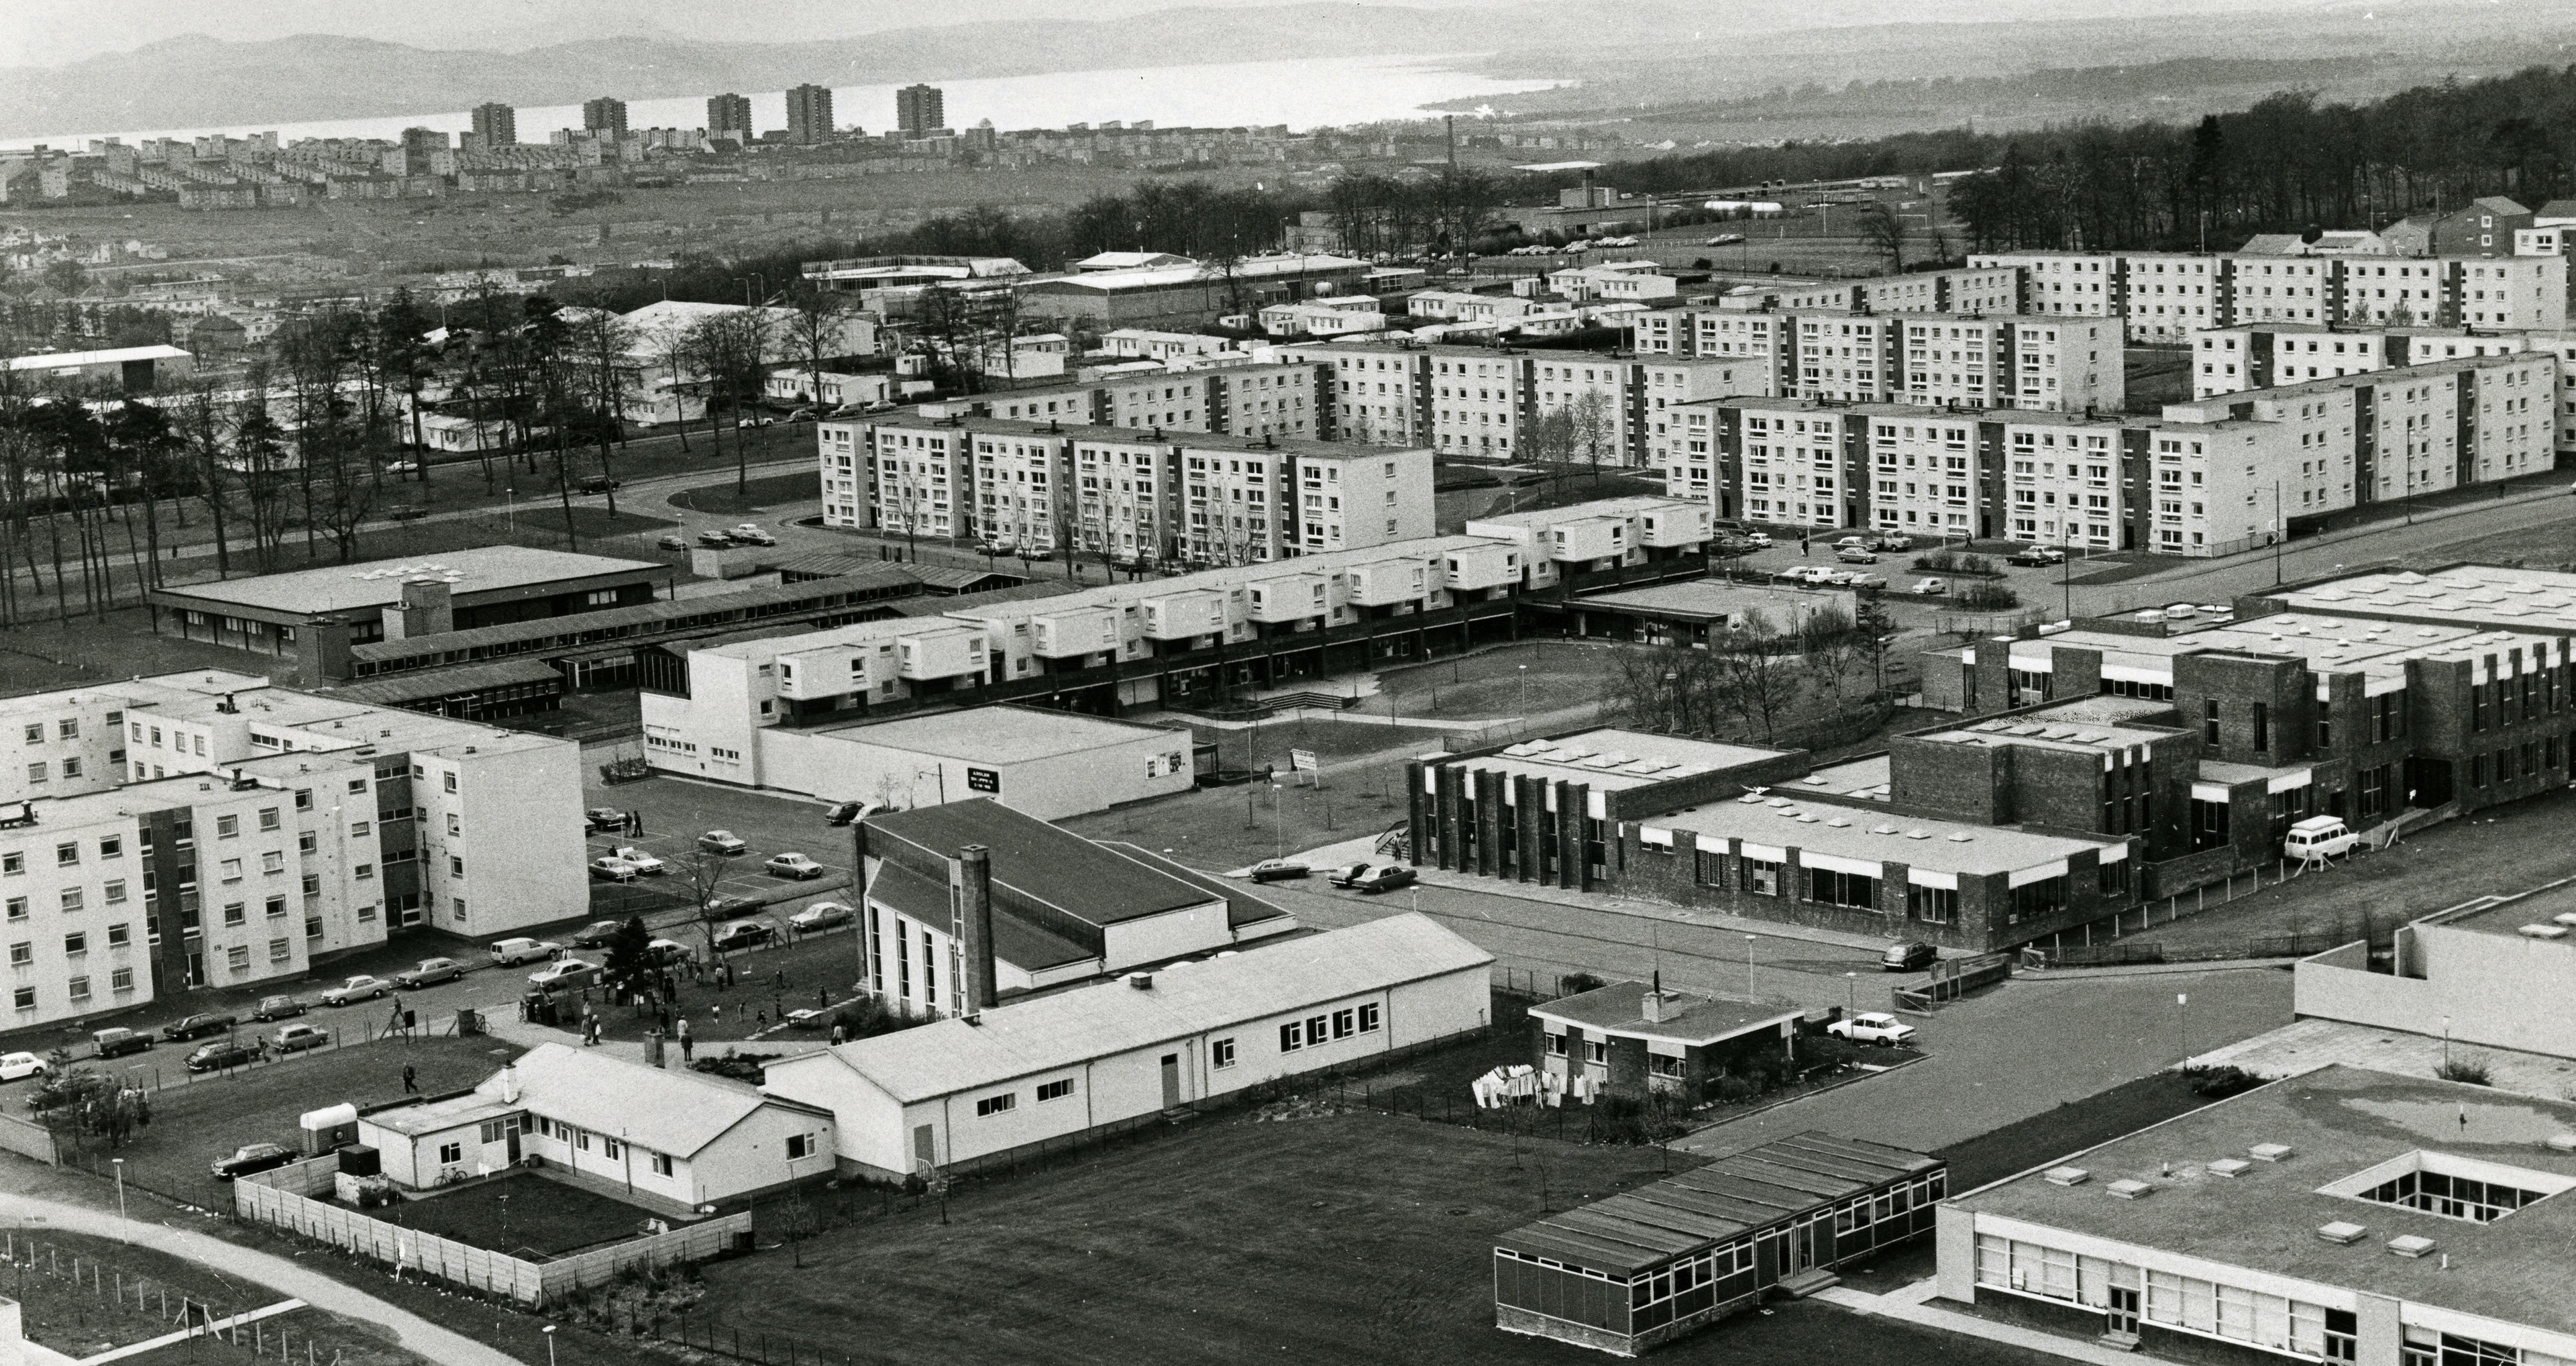 Ardler pictured from above in 1977.